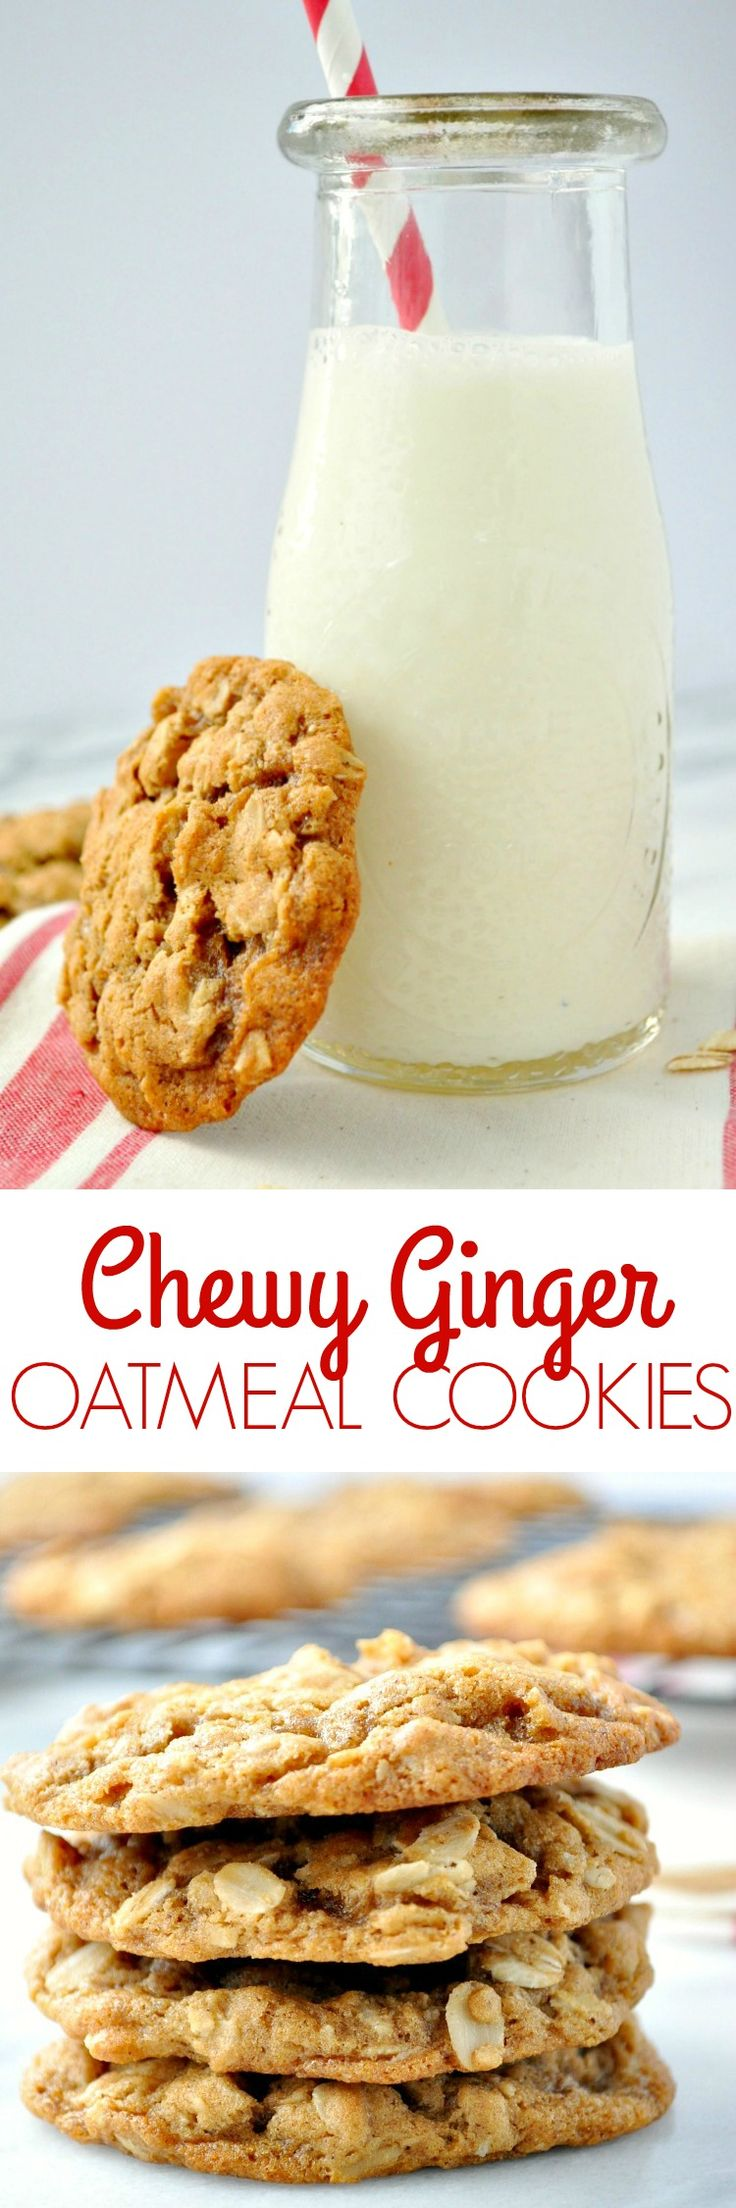 Chewy Ginger Oatmeal Cookies